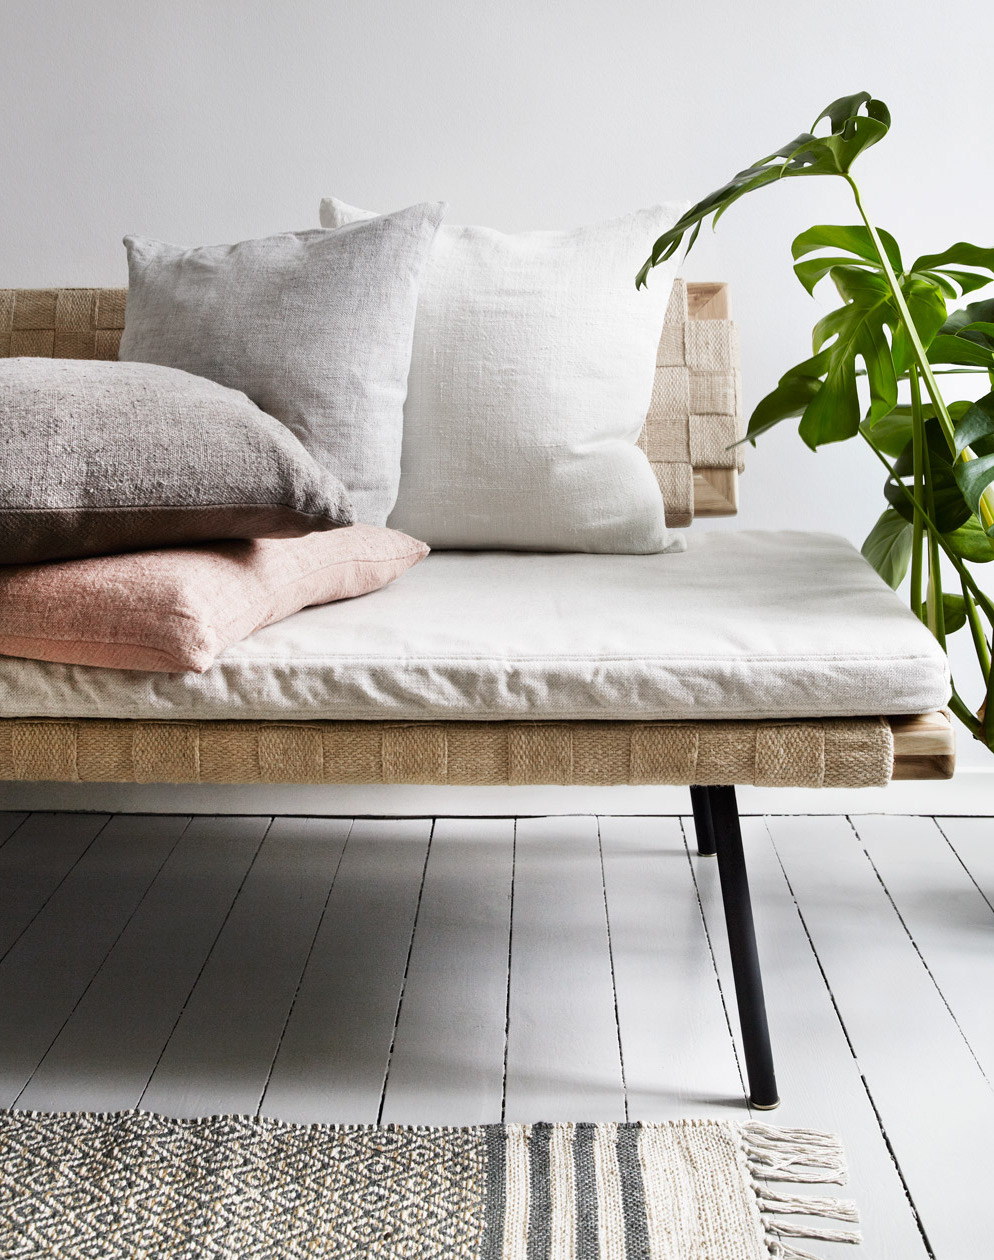 Hygge 7 Styling Tips To Achieve A Scandinavian Look At Home